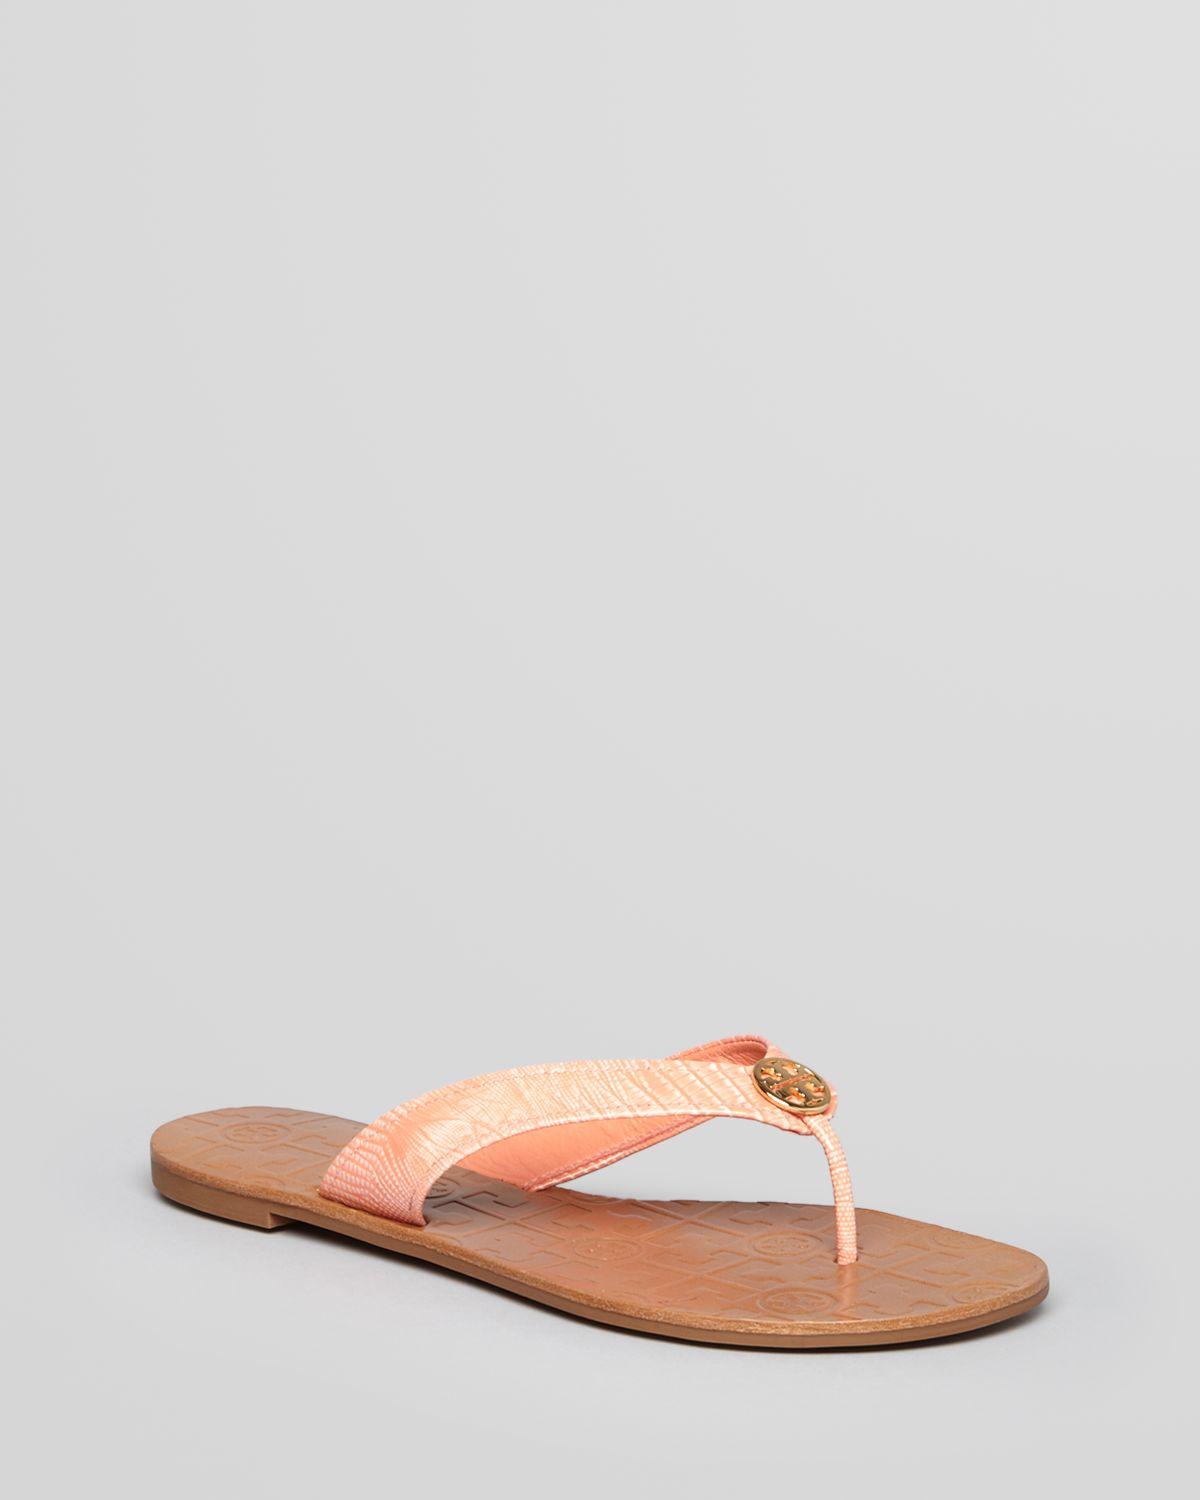 c20859a8d3b5 Lyst - Tory Burch Thong Sandals Thora 2 in Pink